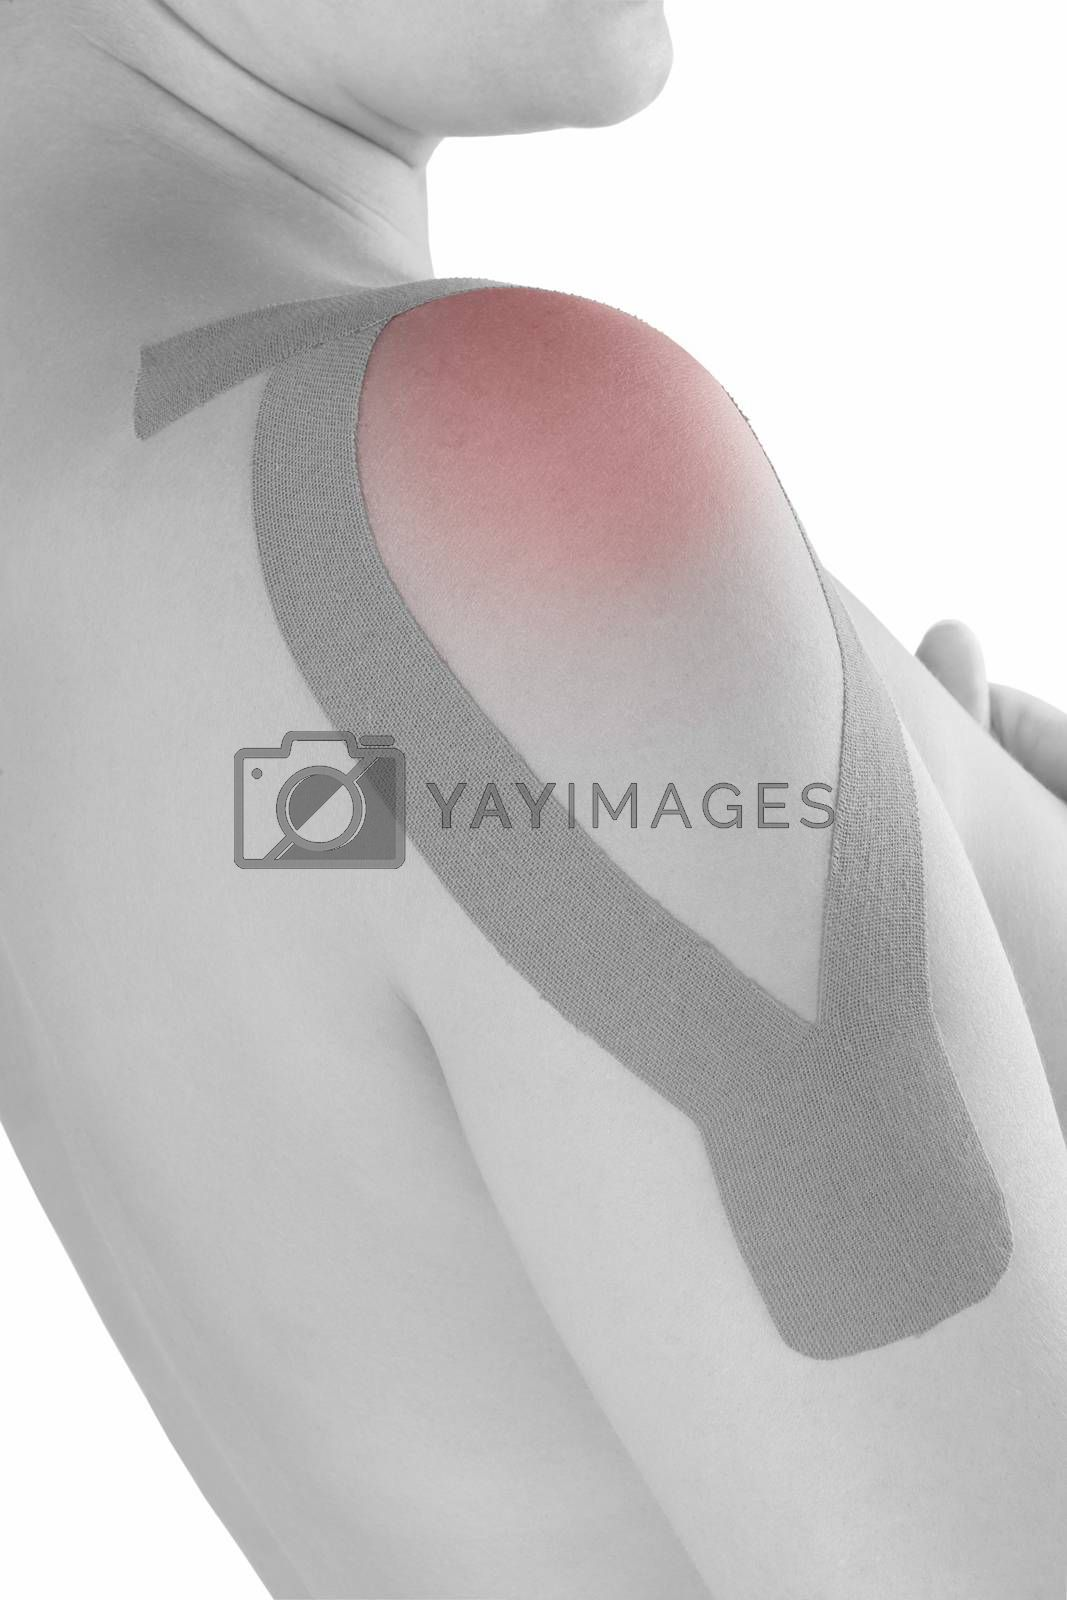 Therapeutic tape on shoulder on beautiful caucasian woman. Alternative medicine, rehabilitation.